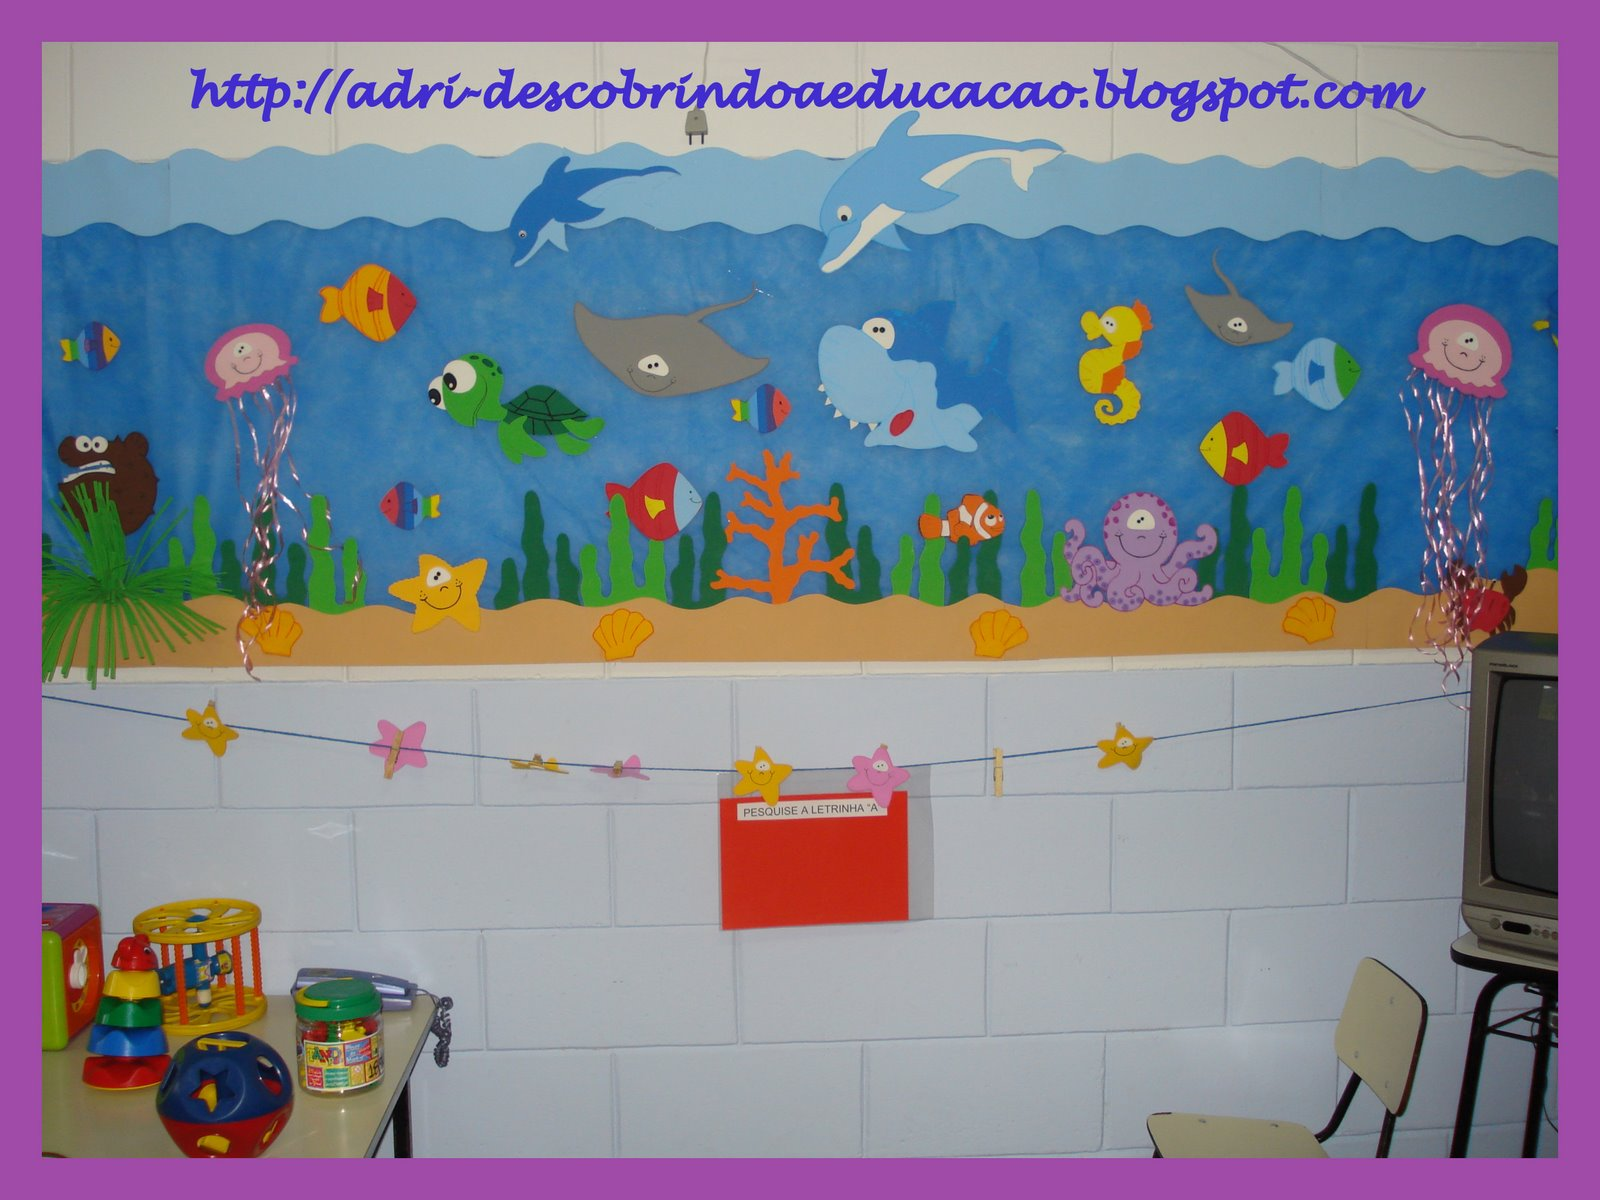 Allégresse ideias para decorar a sala de aula tema fundo do mar